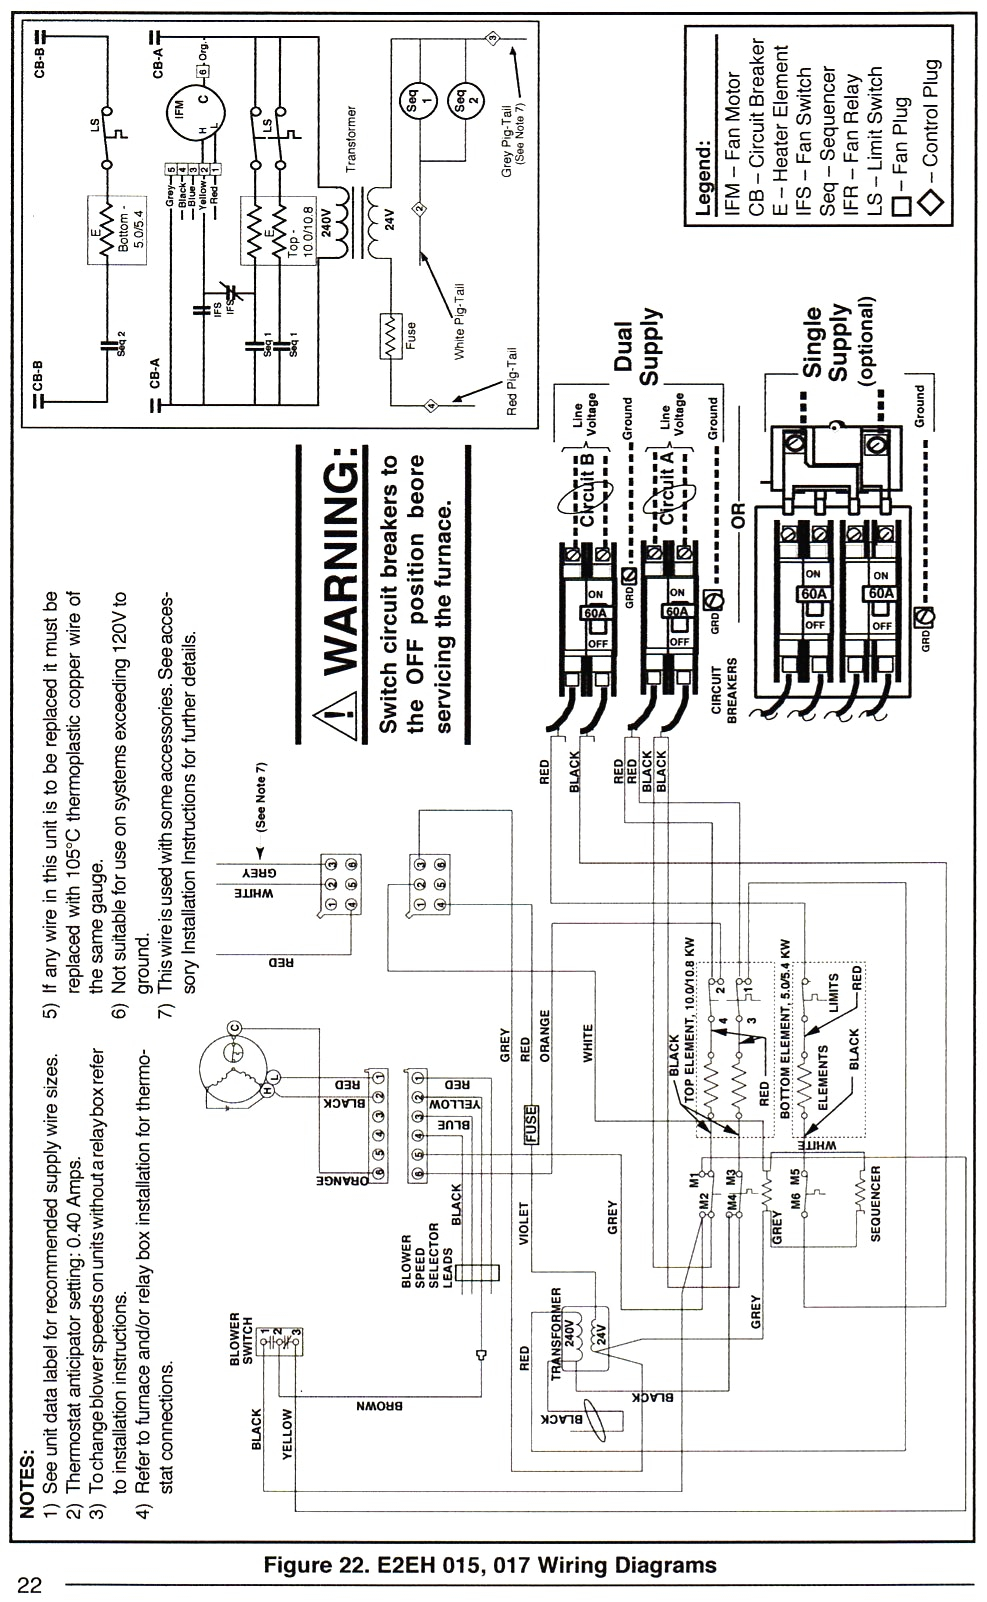 hight resolution of nordyne gas furnace wiring diagram wiring diagram view gibson gas furnace wiring